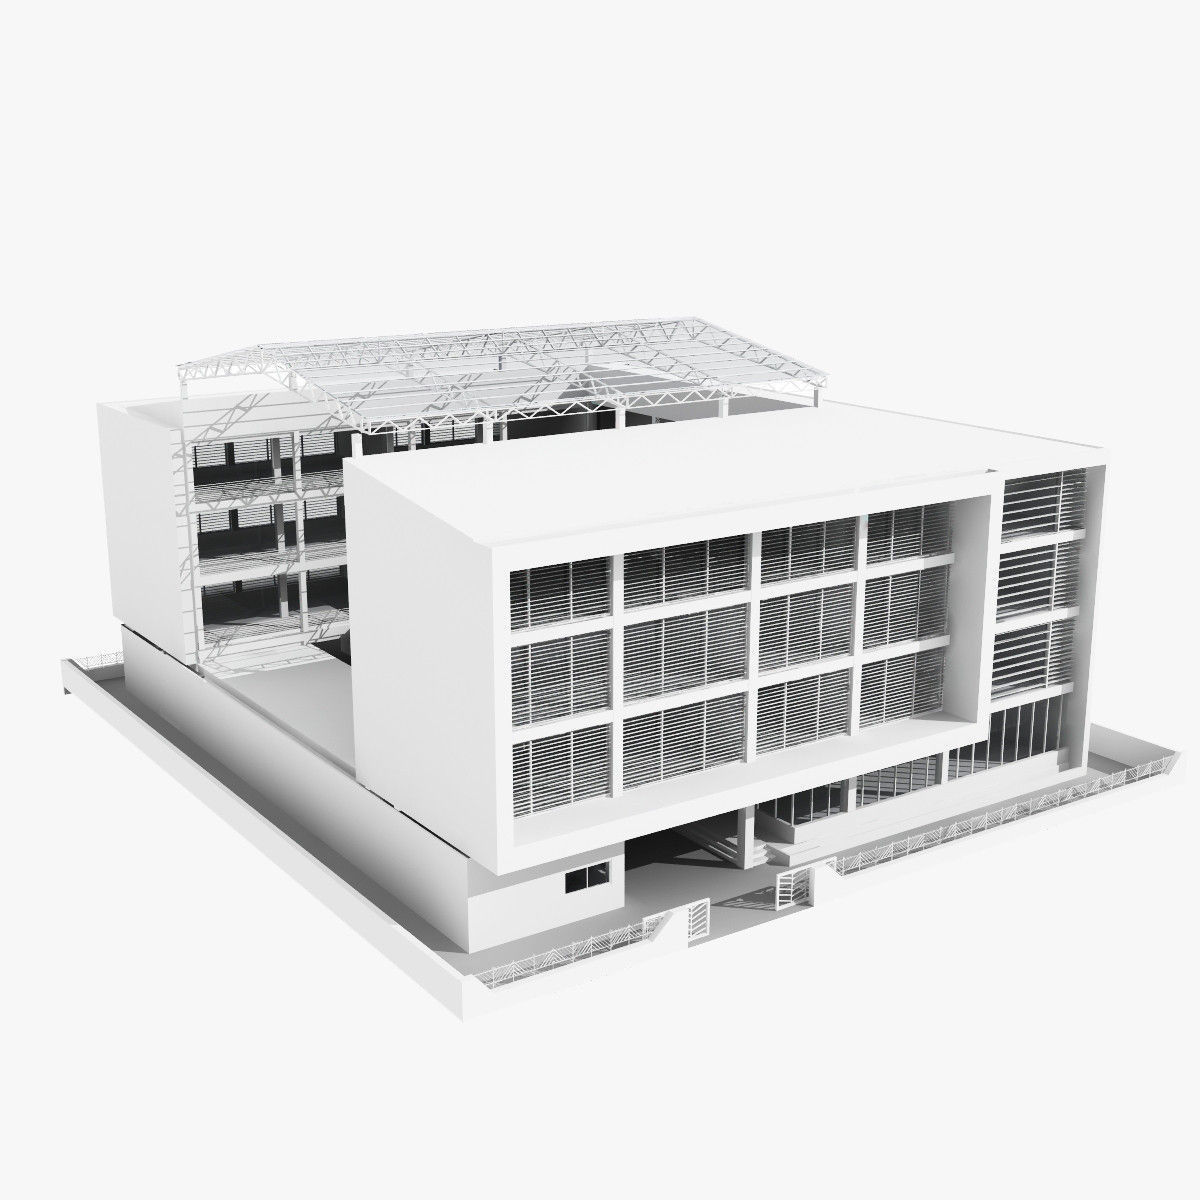 Low rise office building with courtyard 3d model max obj for 3d max building